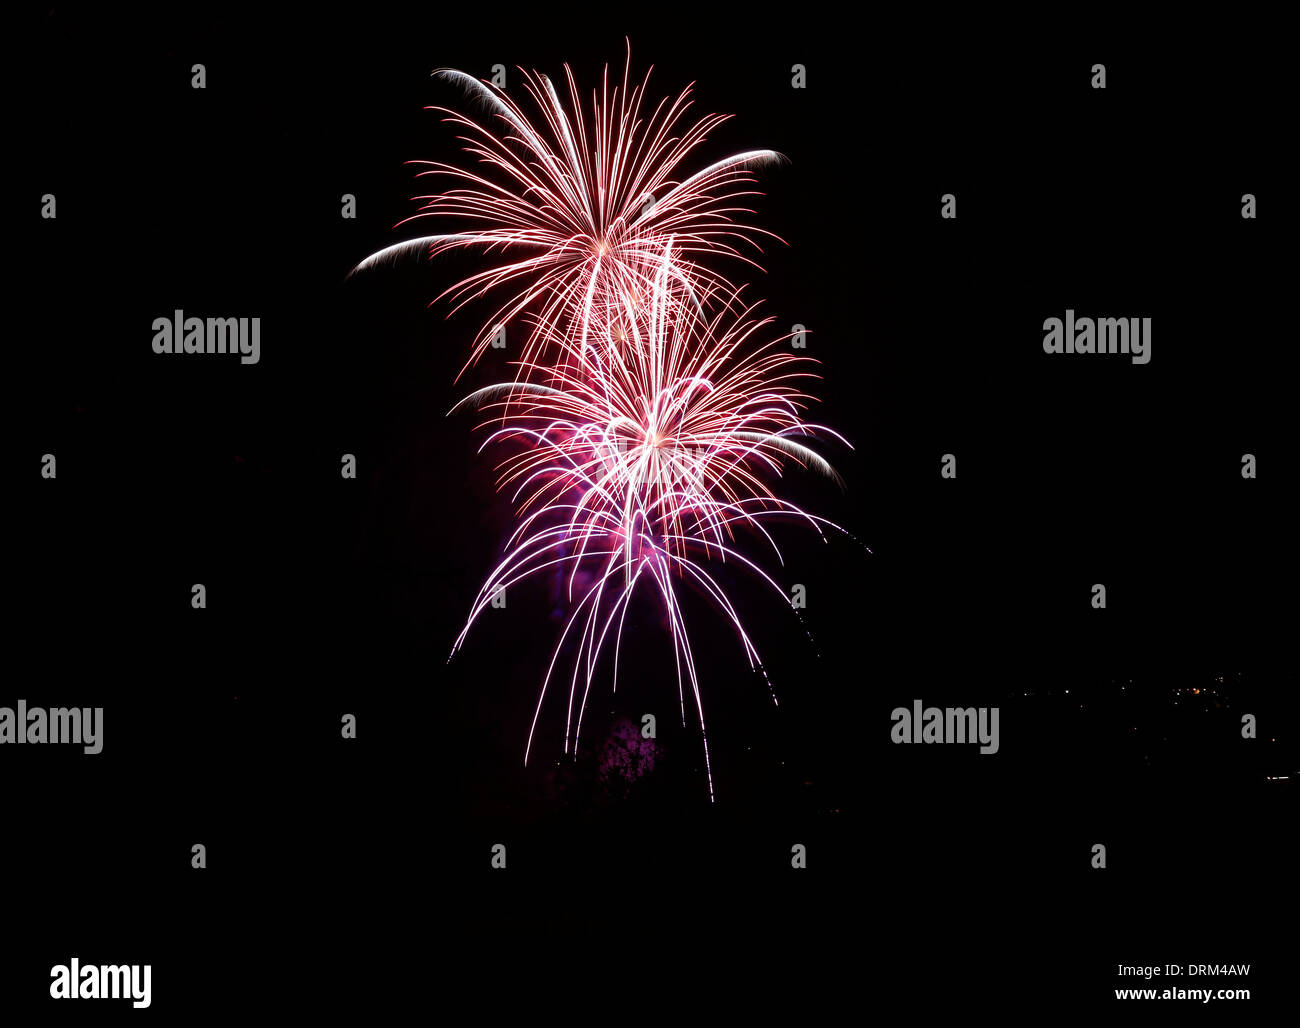 Pink and white fireworks at black sky - Stock Image